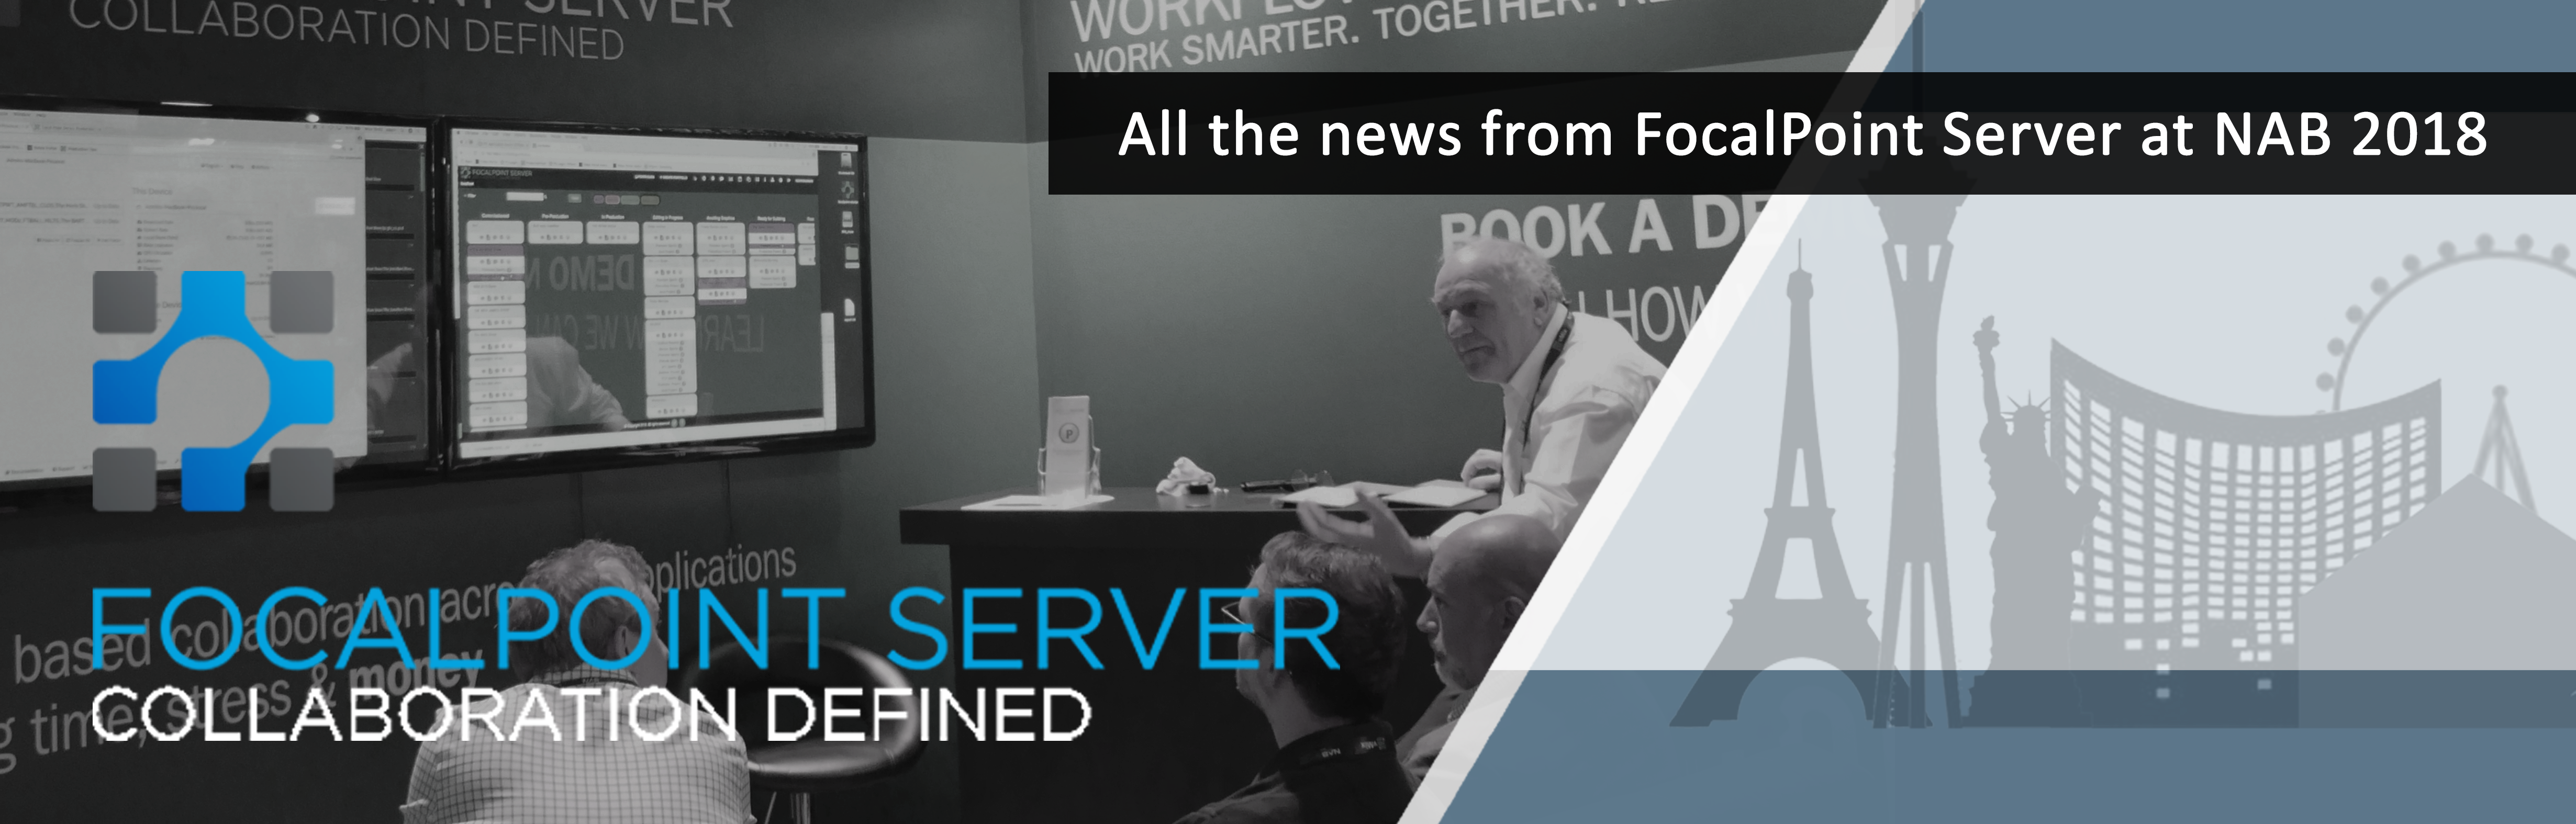 Post NAB 2018 News From FocalPoint Server_Header